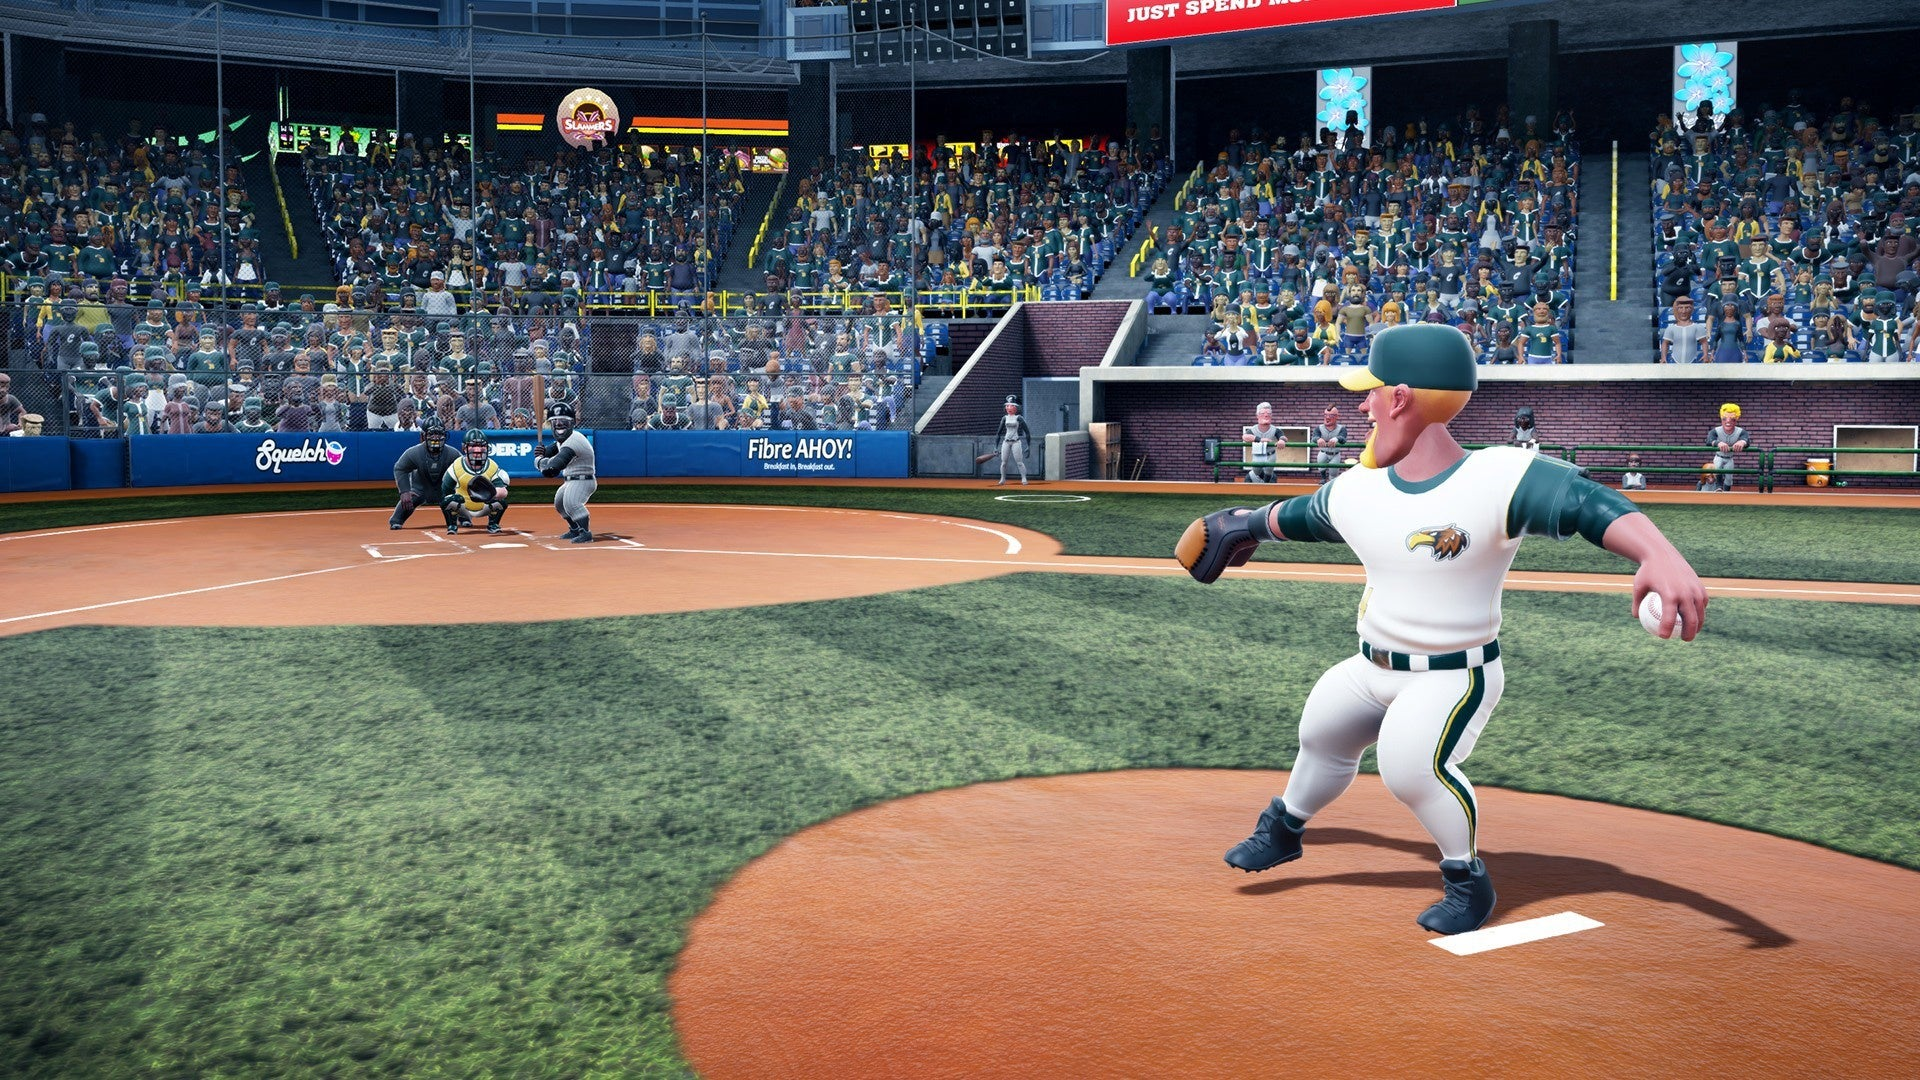 Apparently You Can Just Murder Pitchers In This Baseball Video Game